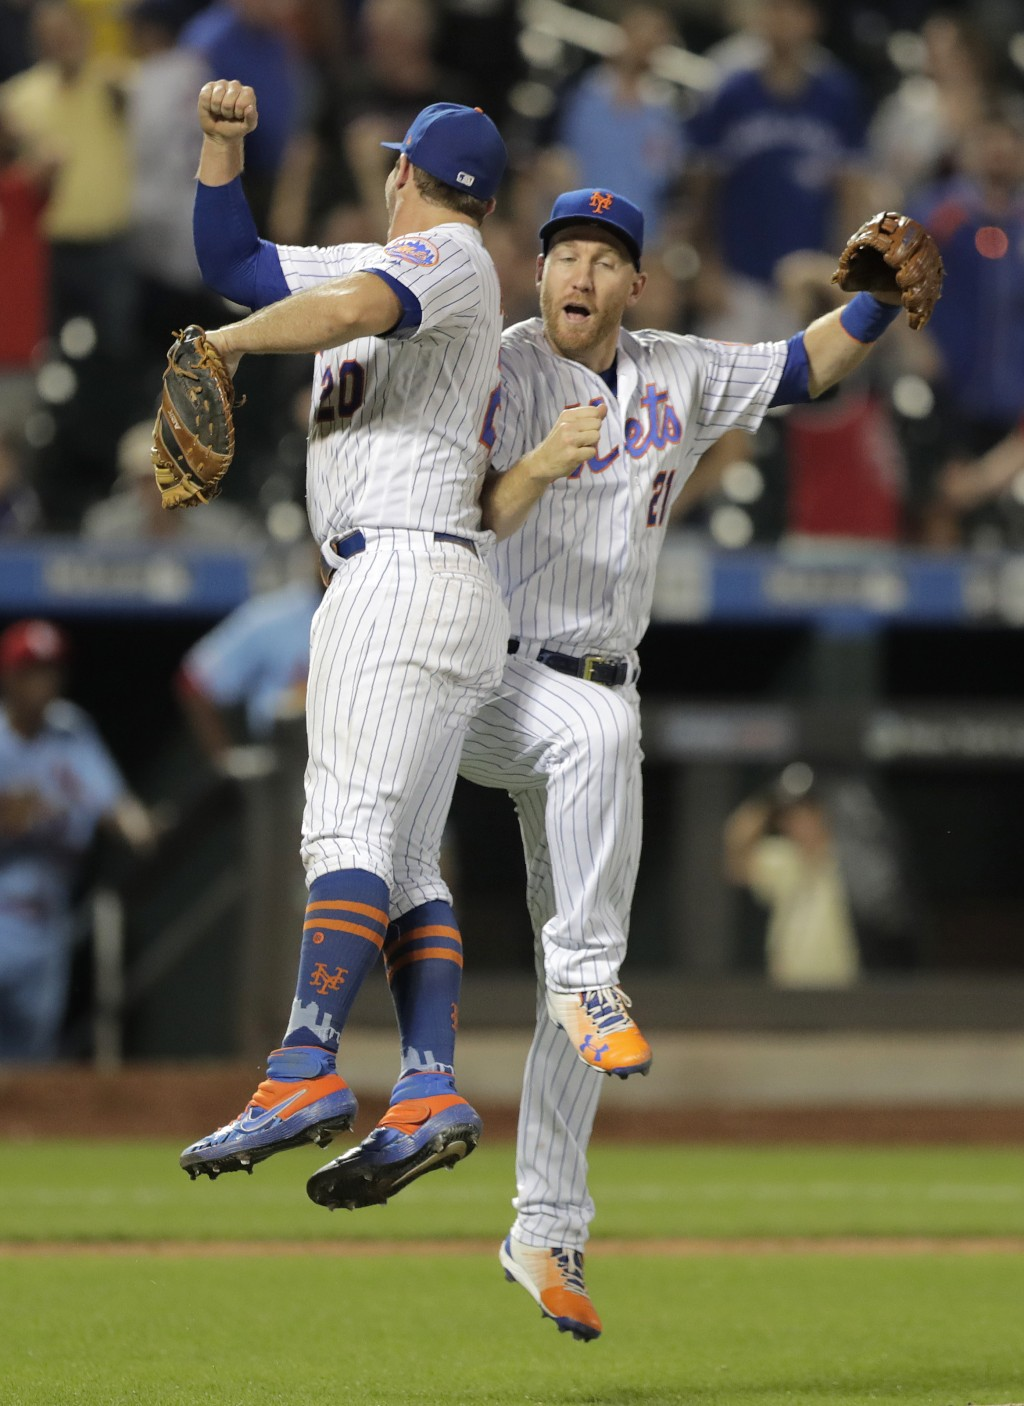 New York Mets first baseman Pete Alonso, left, and third baseman Todd Frazier celebrate after the Mets defeated the St. Louis Cardinals 8-7 during a b